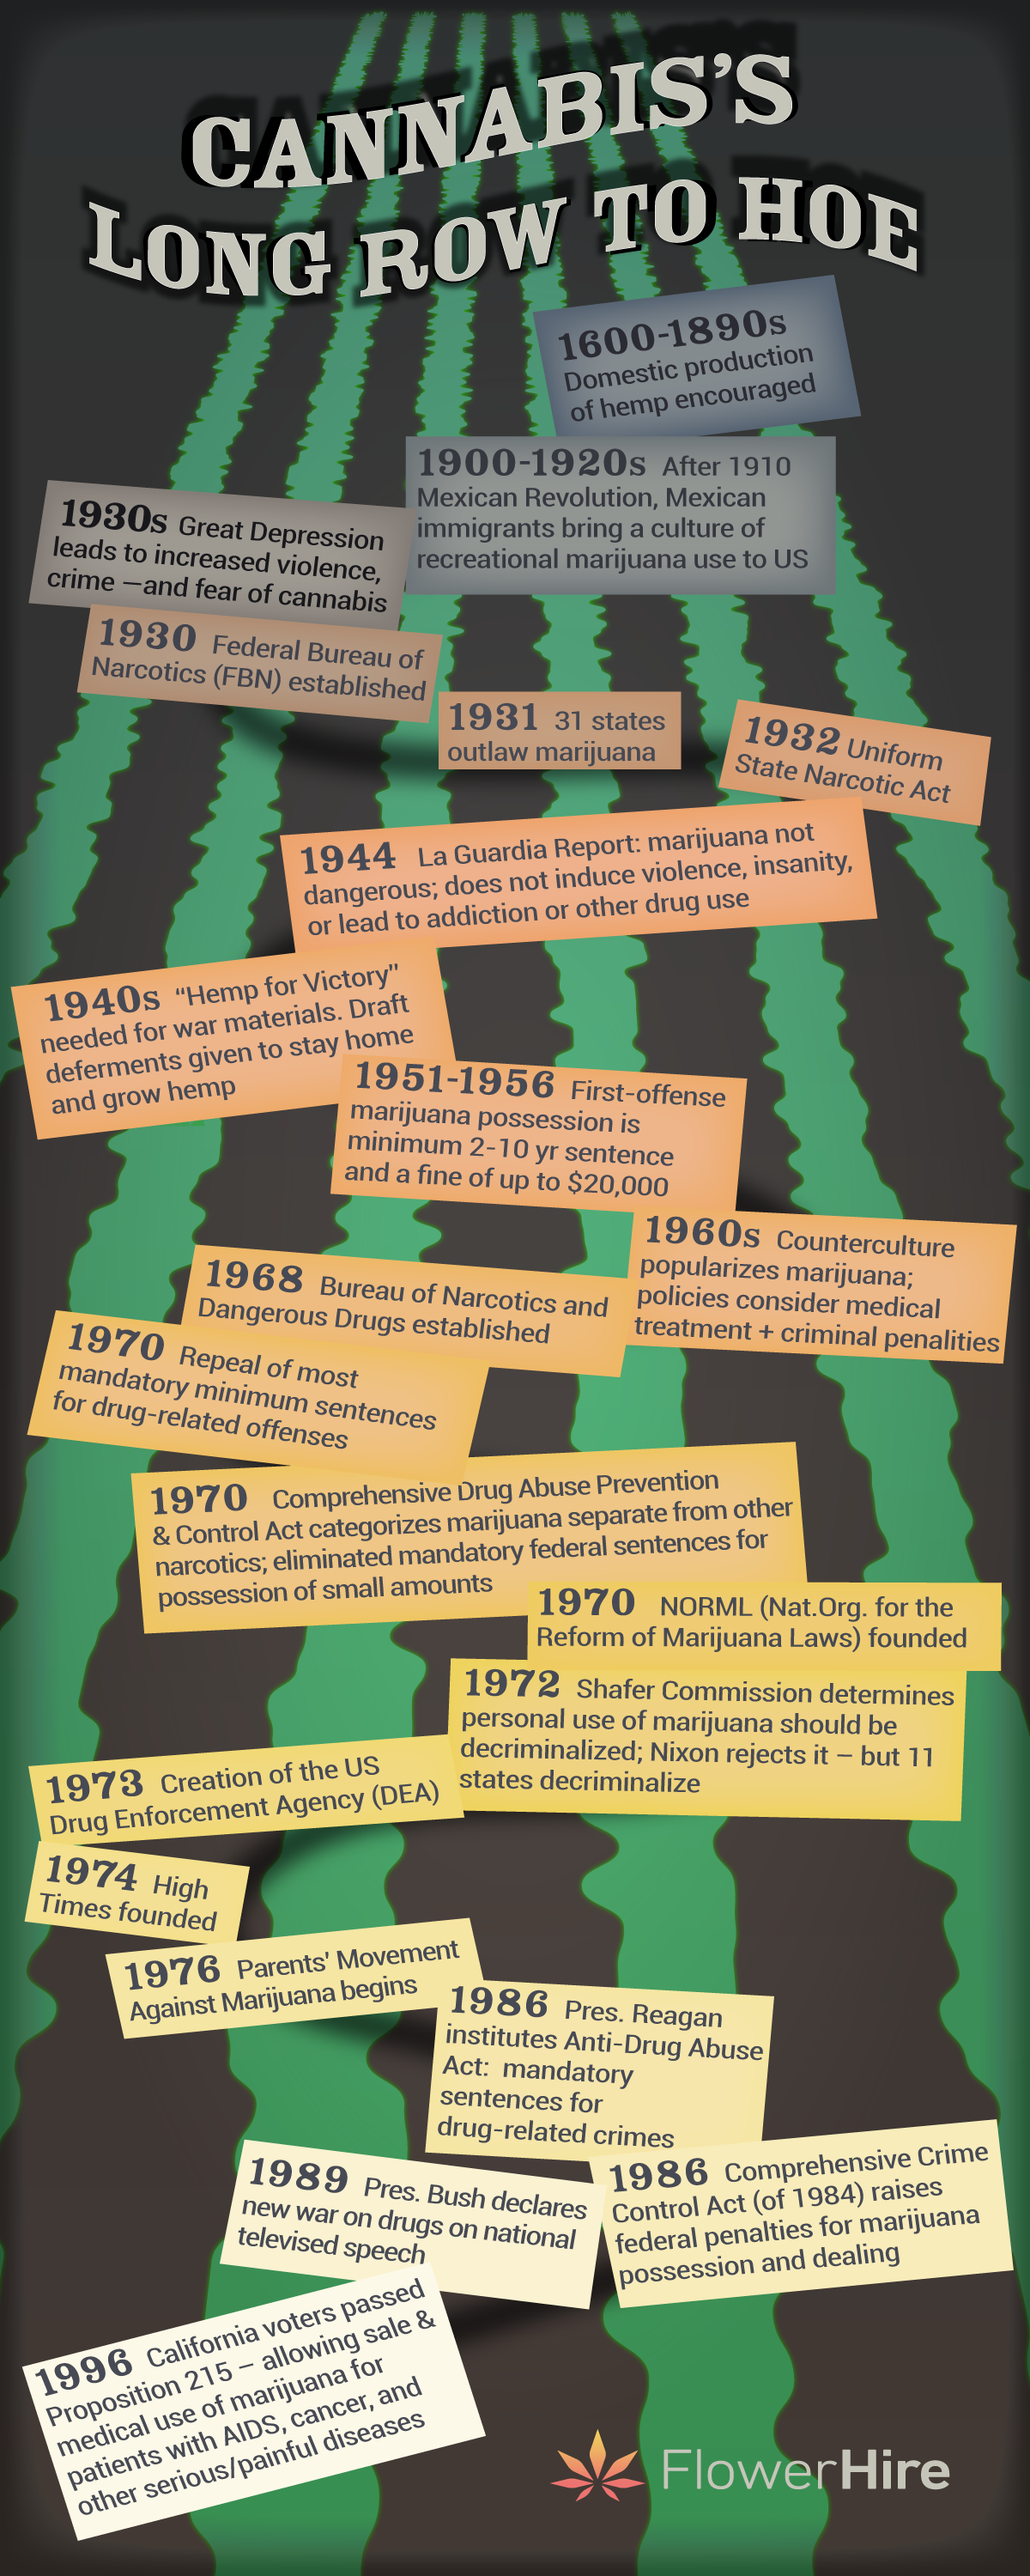 a timeline of the history of cannabis in America